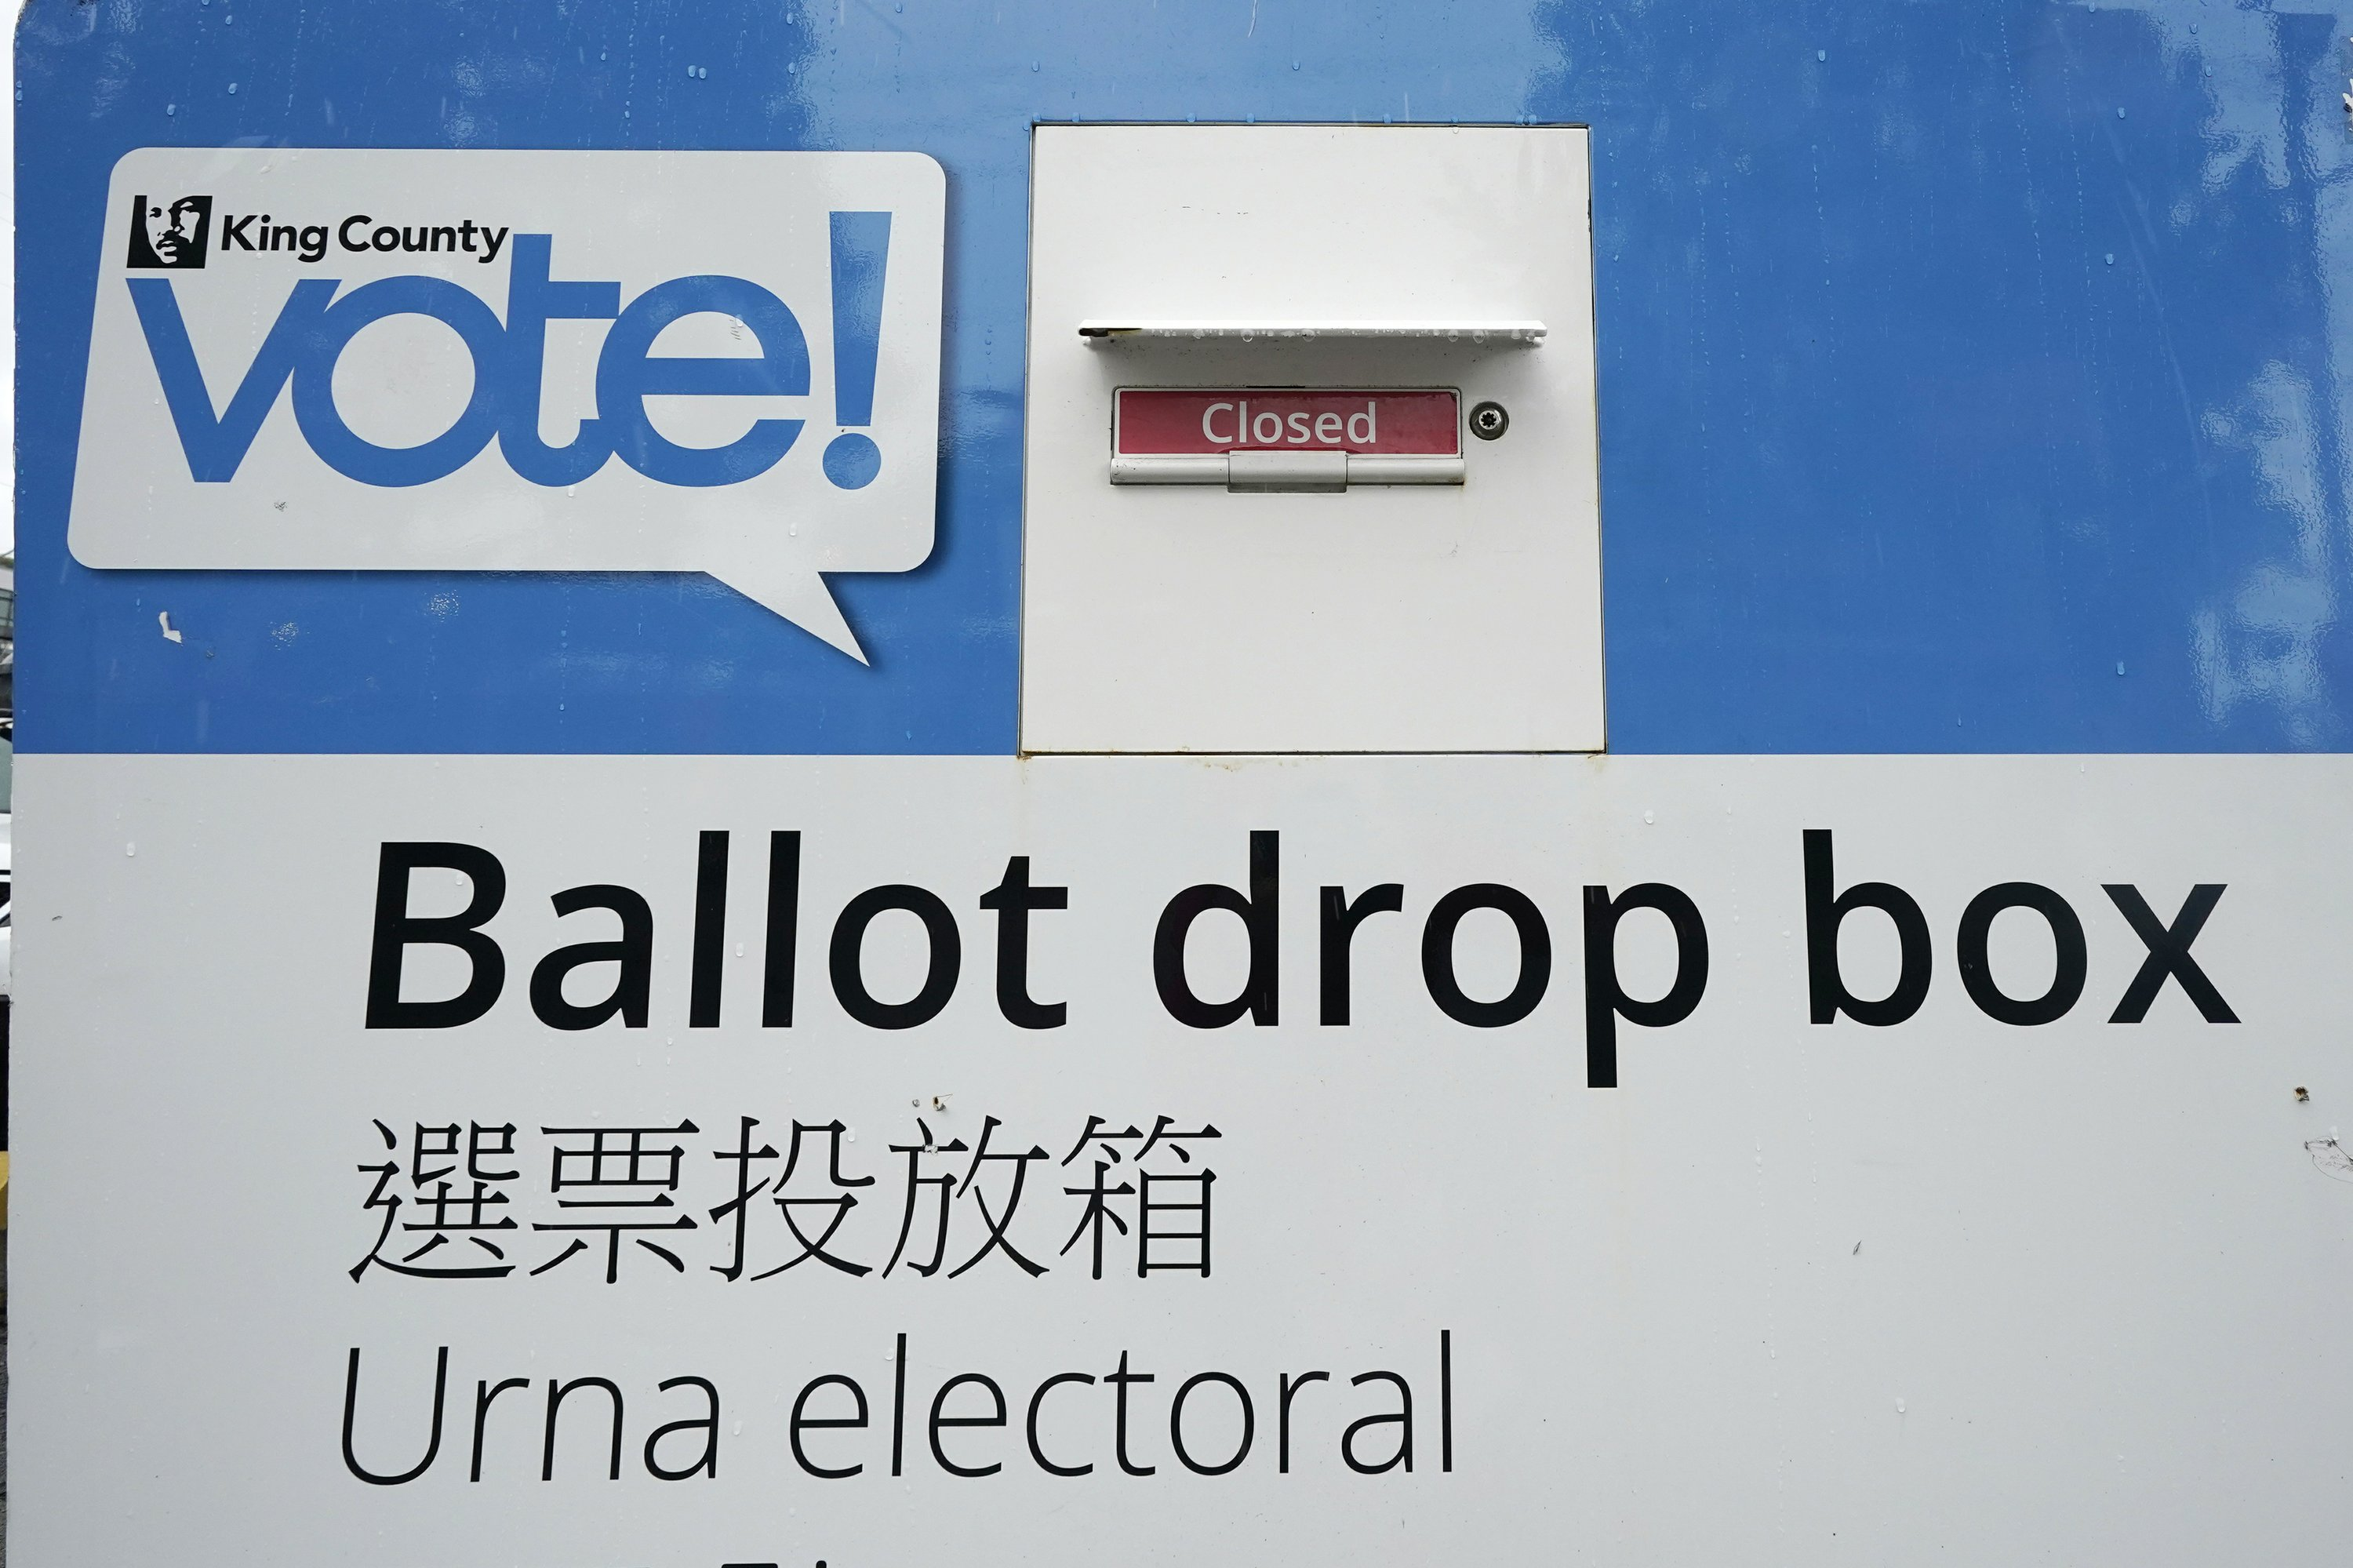 Are absentee votes and mail-in votes different?